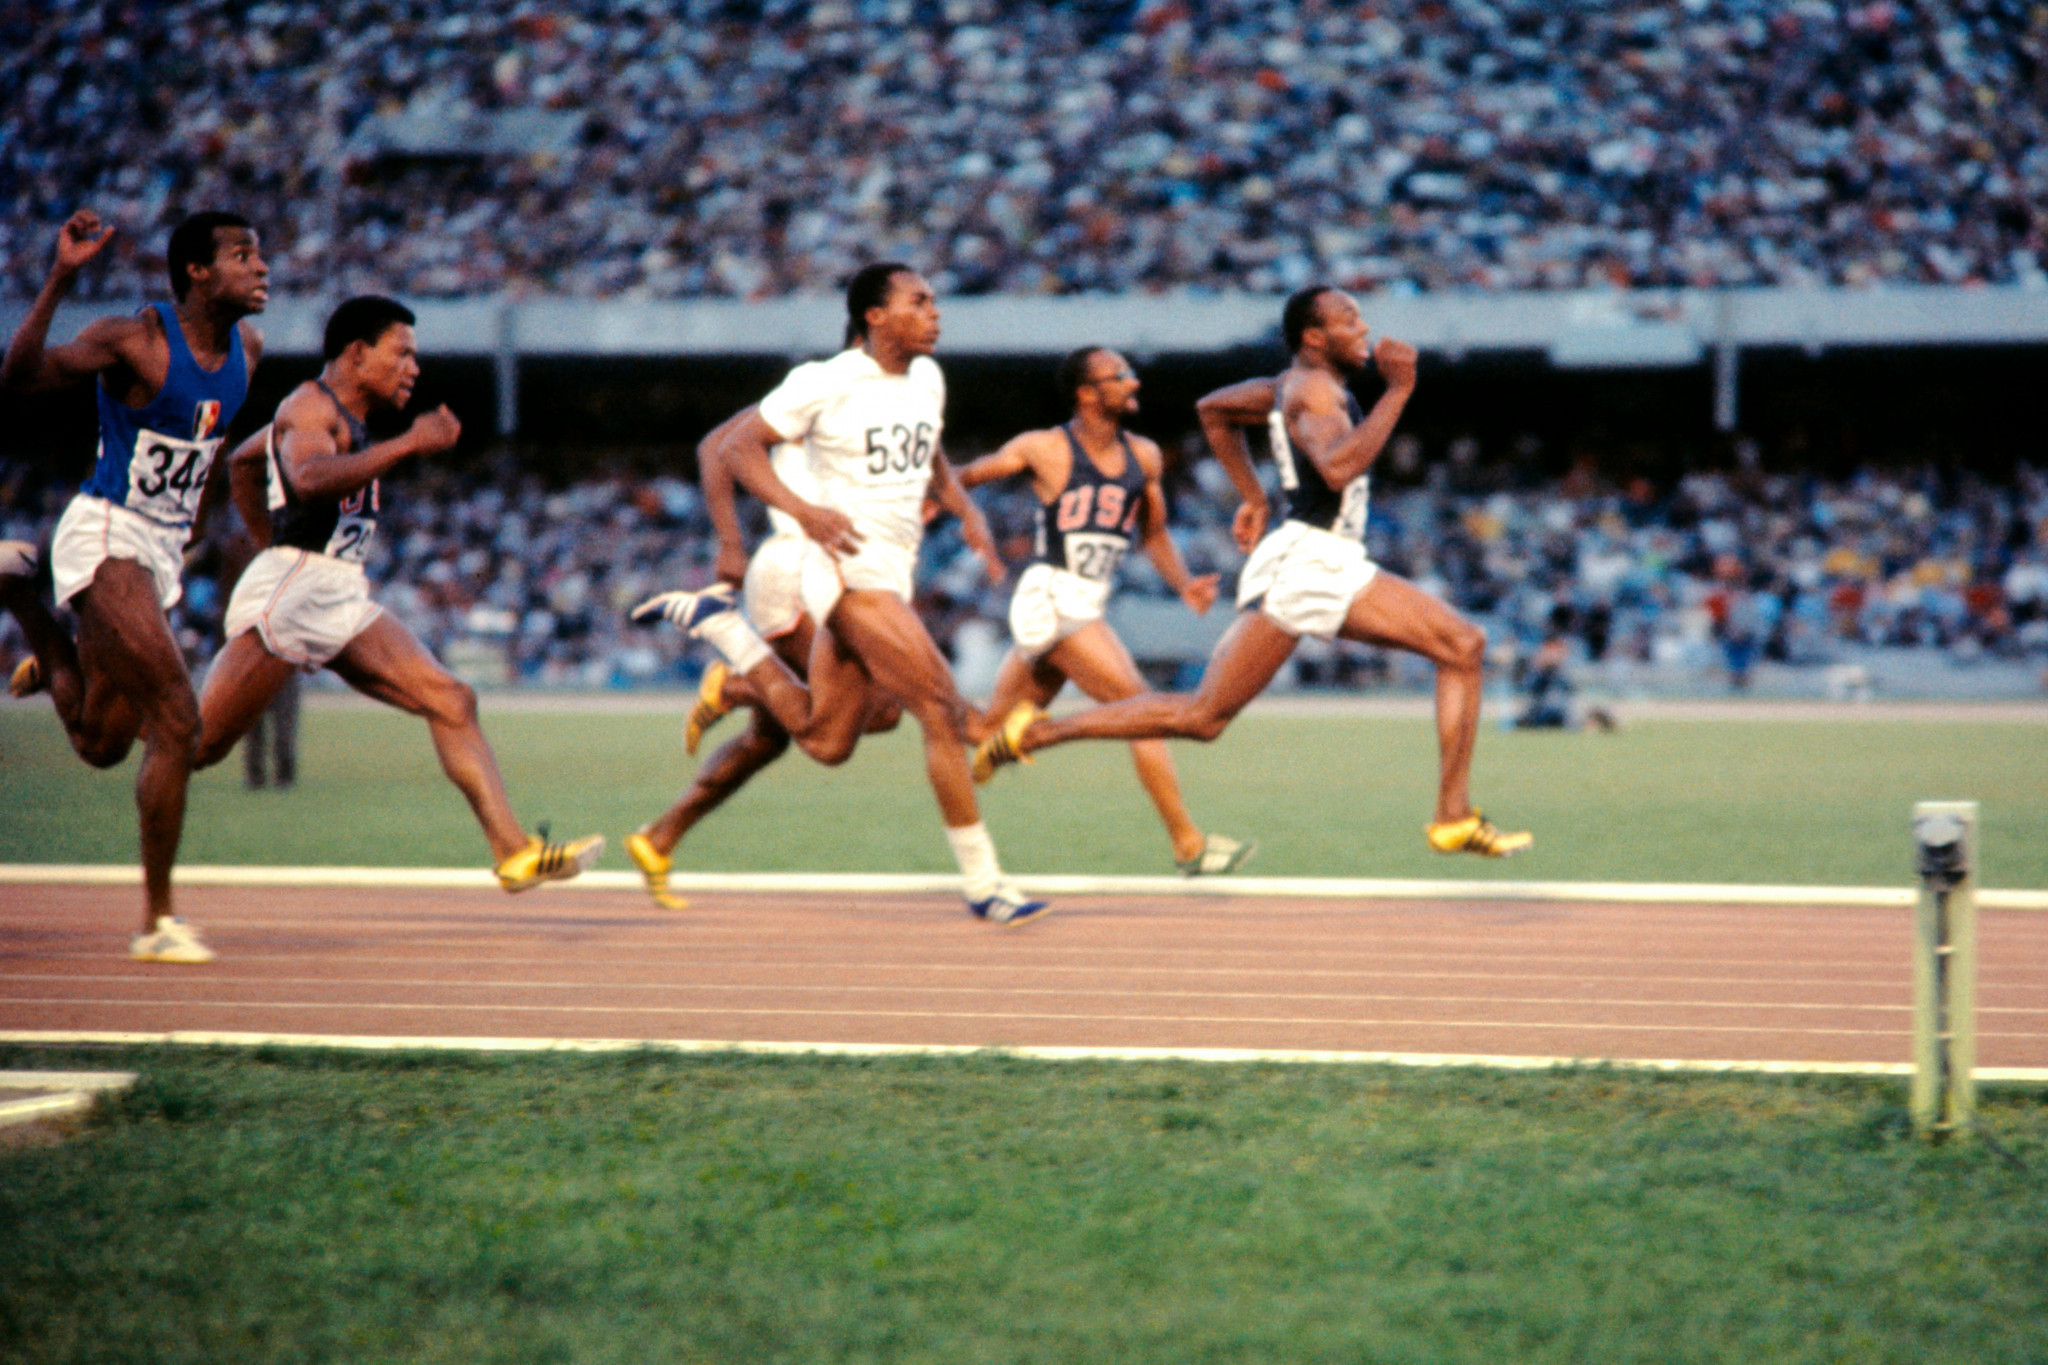 Jim Hines en route to Olympic 100m gold at the Mexico City 1968 Games in a world record of 9.95sec. He was less successful as an NFL player, earning the nickname